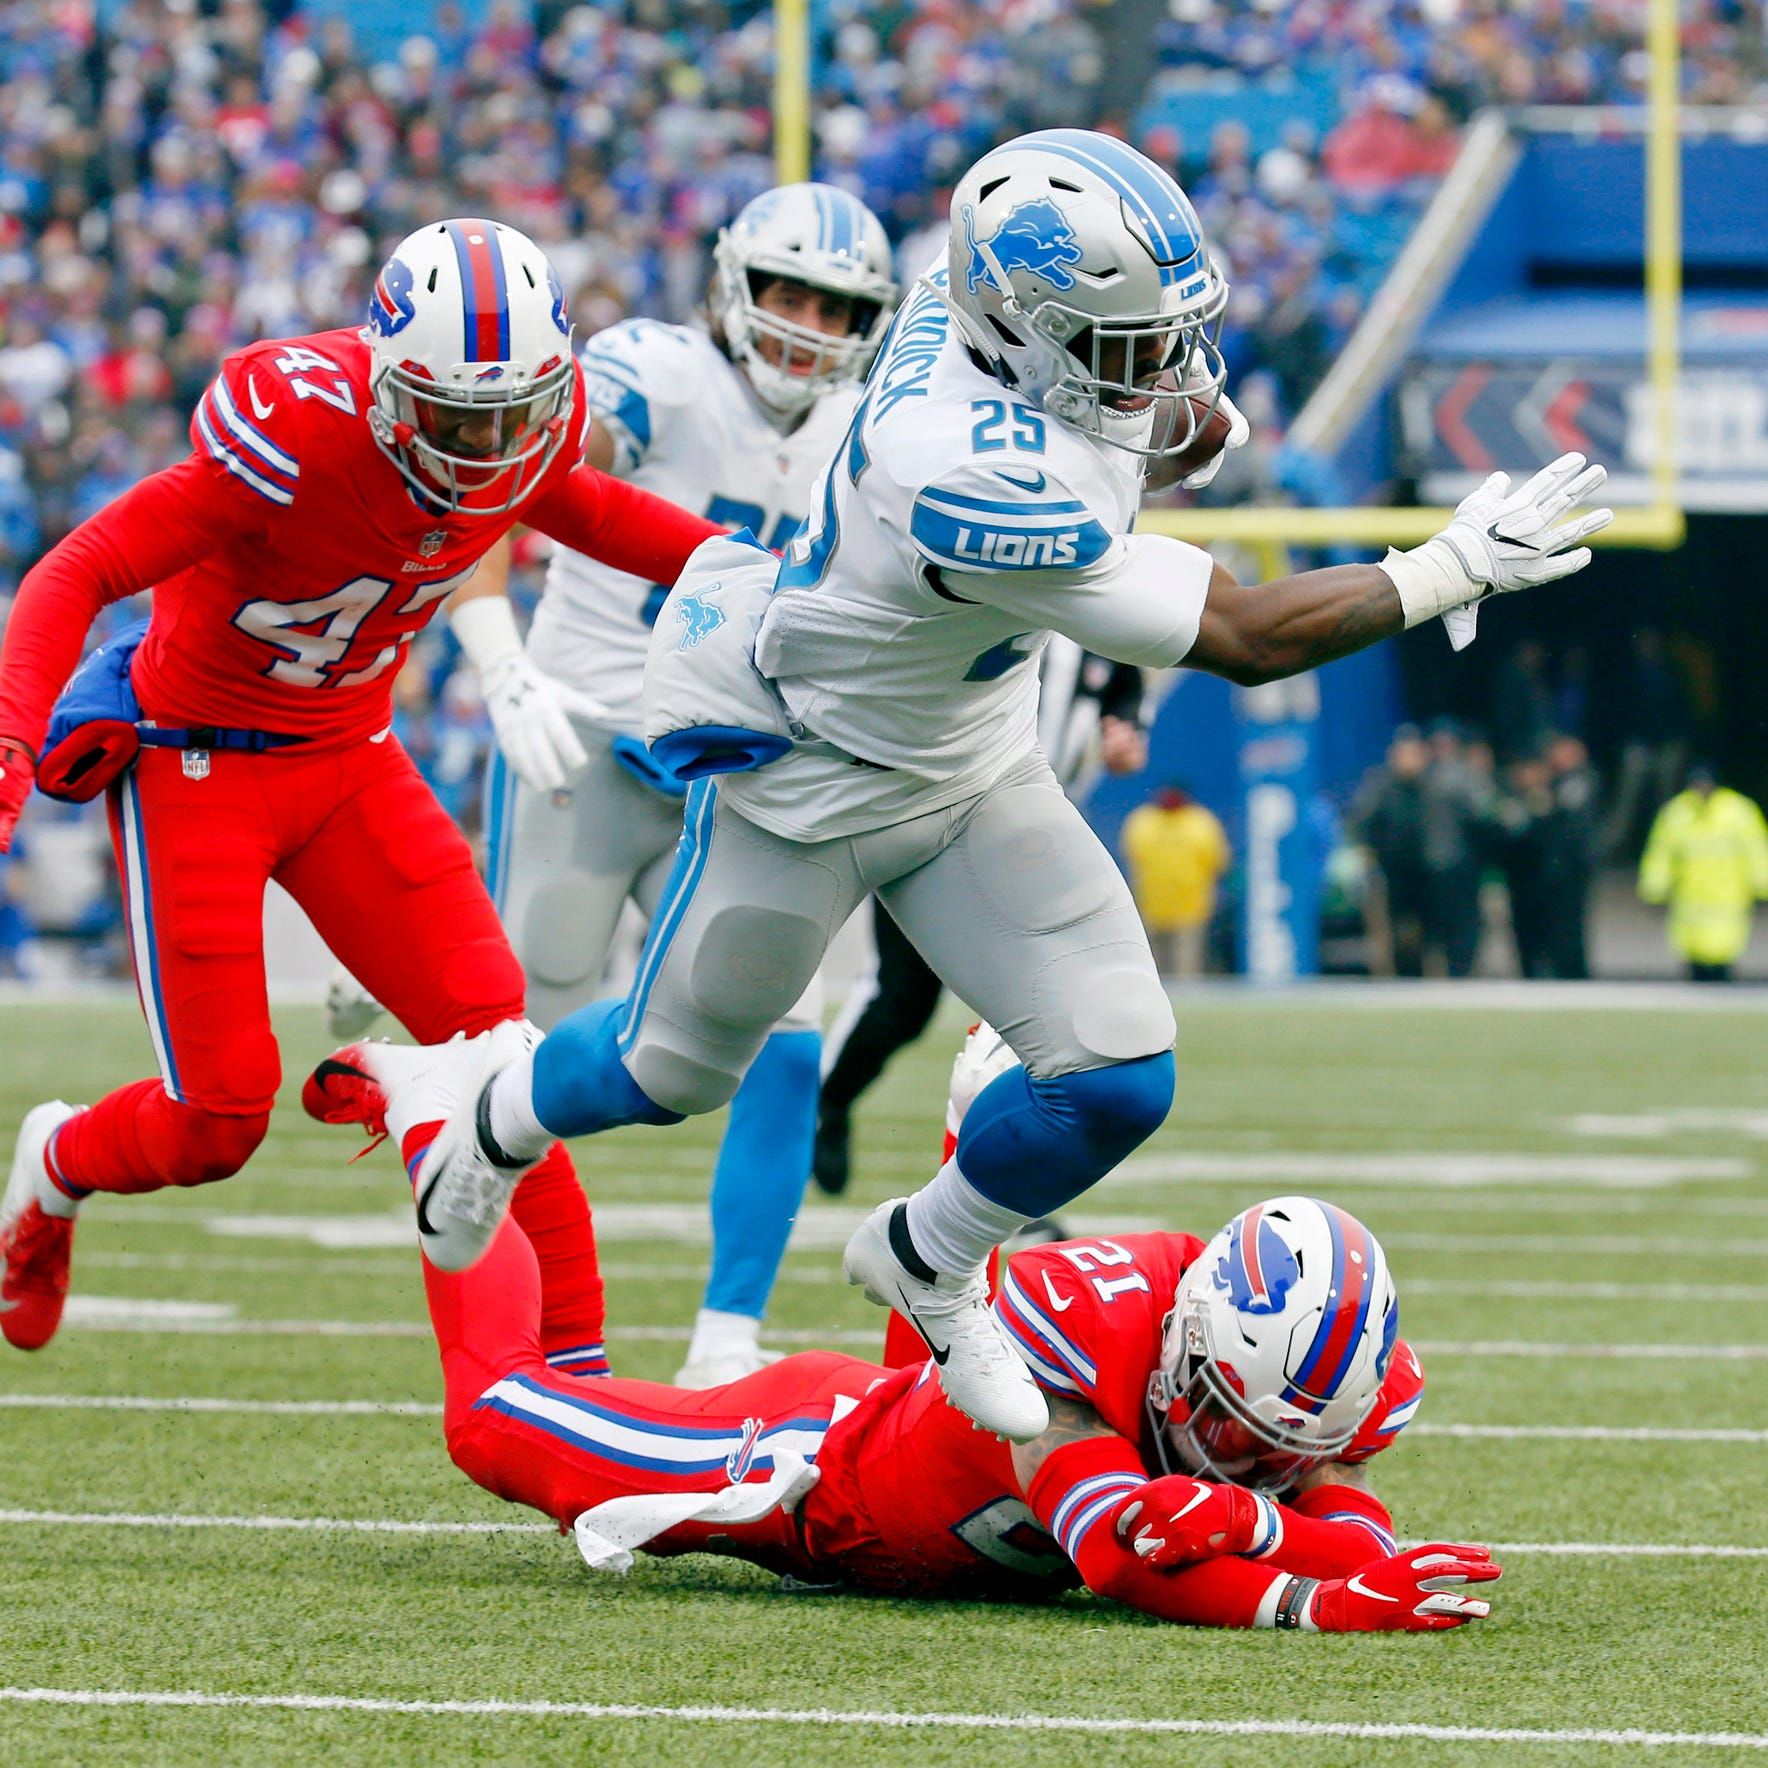 Detroit Lions lose to Buffalo Bills, 14-13: Blog recap